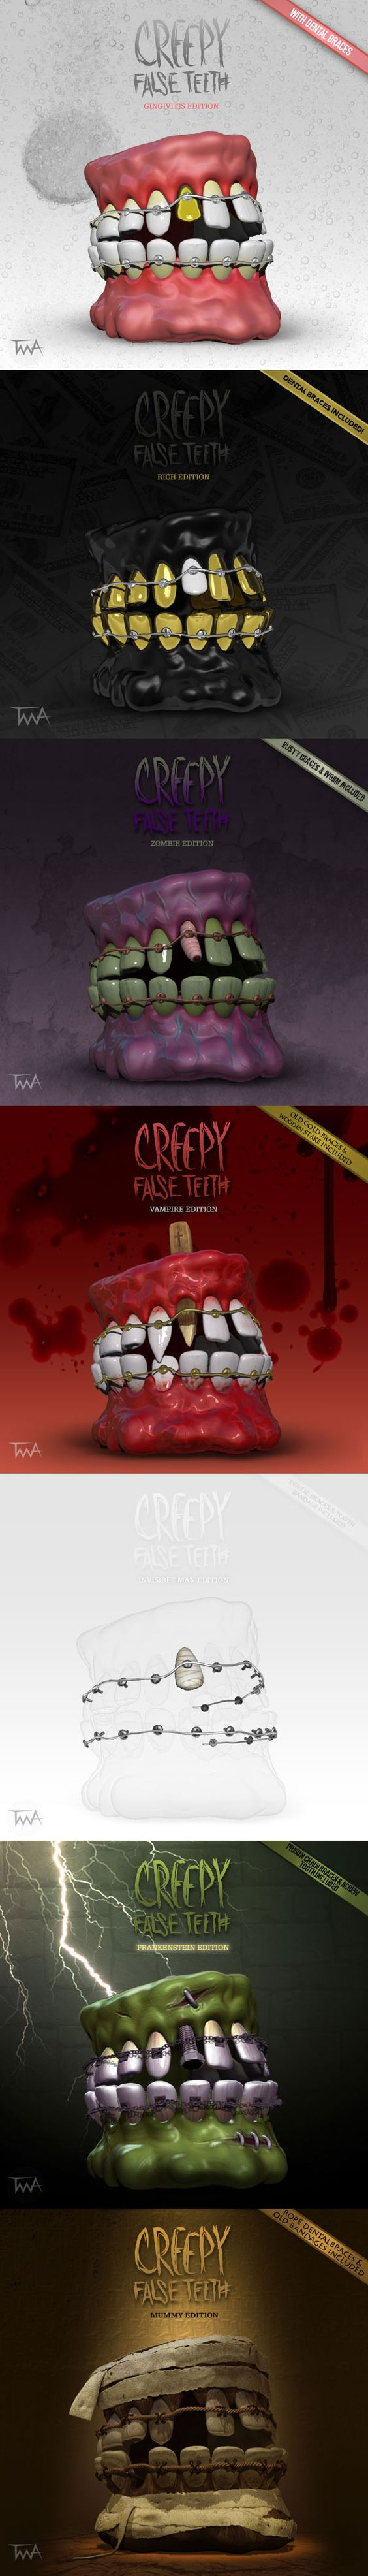 Creepy False Teeth with dental braces